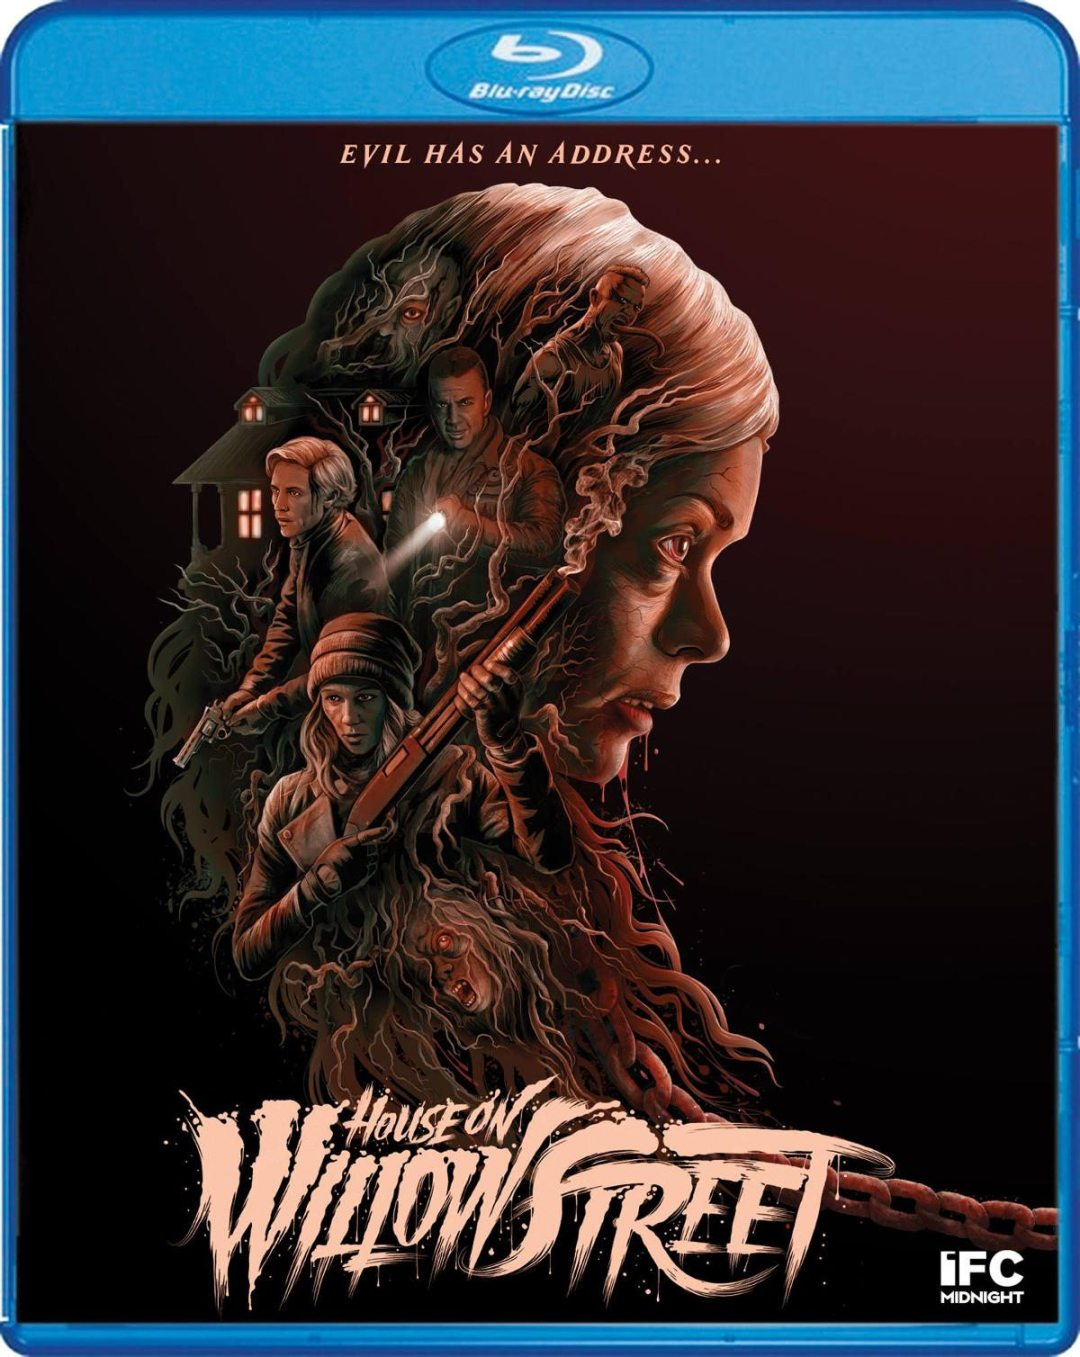 The Cover for 'The House on Willow Street' Blu-ray Looks Absolutely Beautiful!